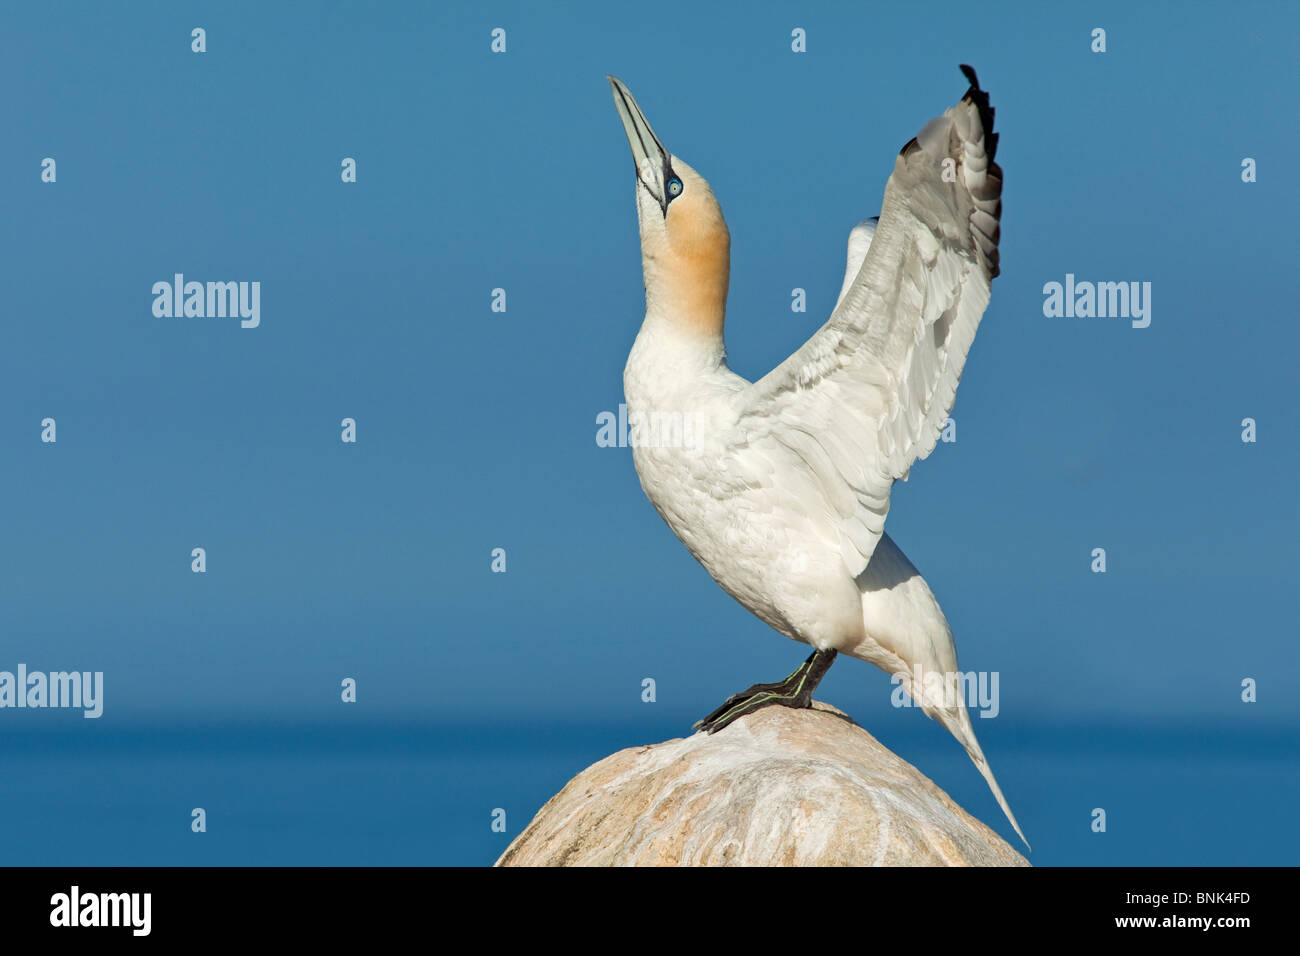 Gannet flapping its wings - Stock Image